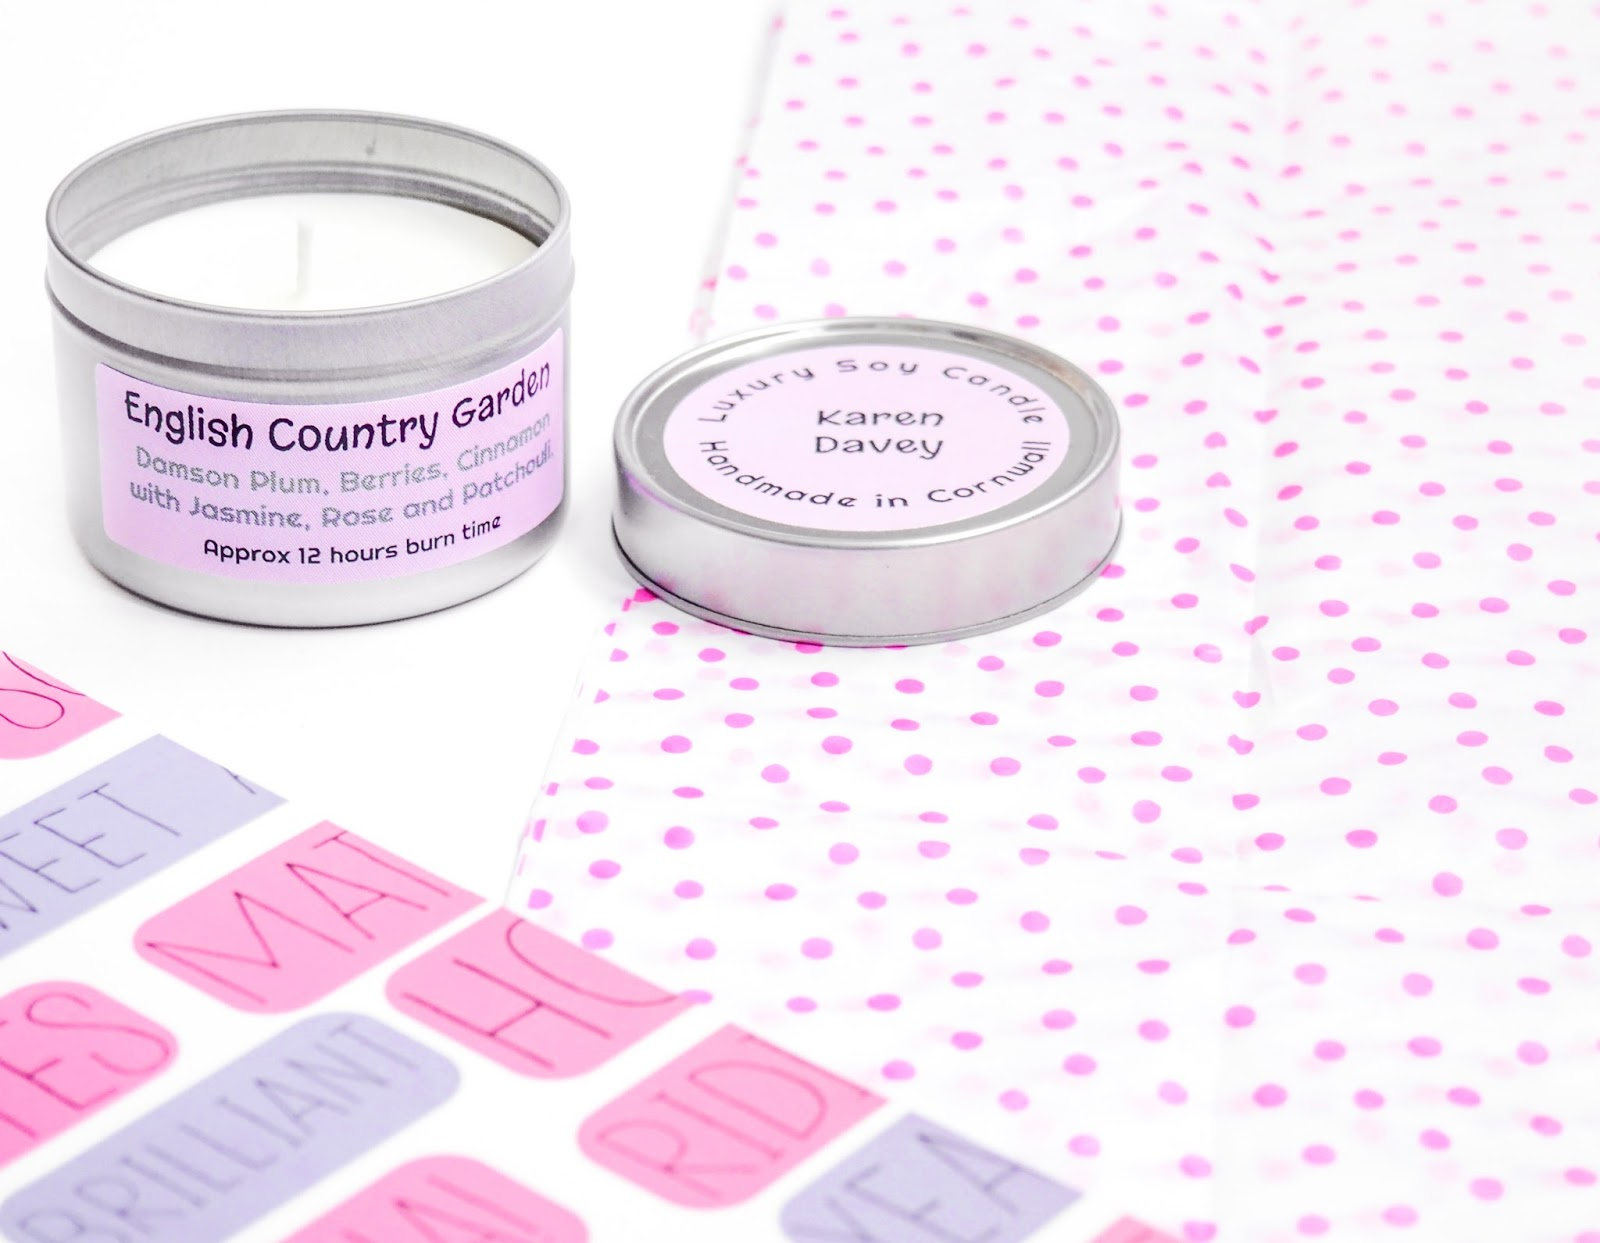 Karen Davey English Country Garden Candle Review